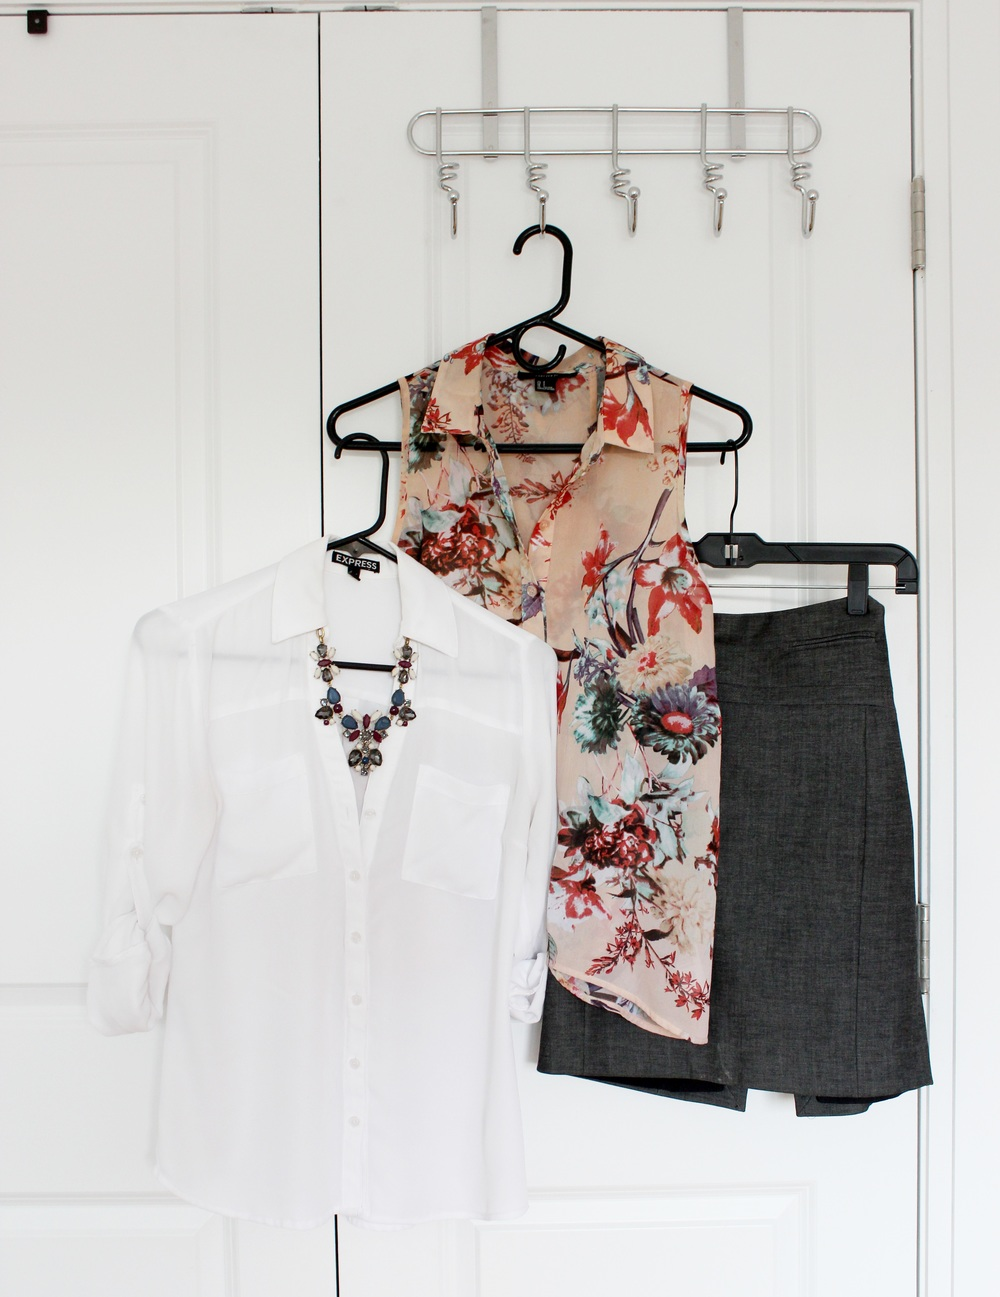 Left to right: 1. White shirt (Express, old) 2. Necklace (Jcrew, old) 3. Floral top (Forever21, old) 4. (Express, old)